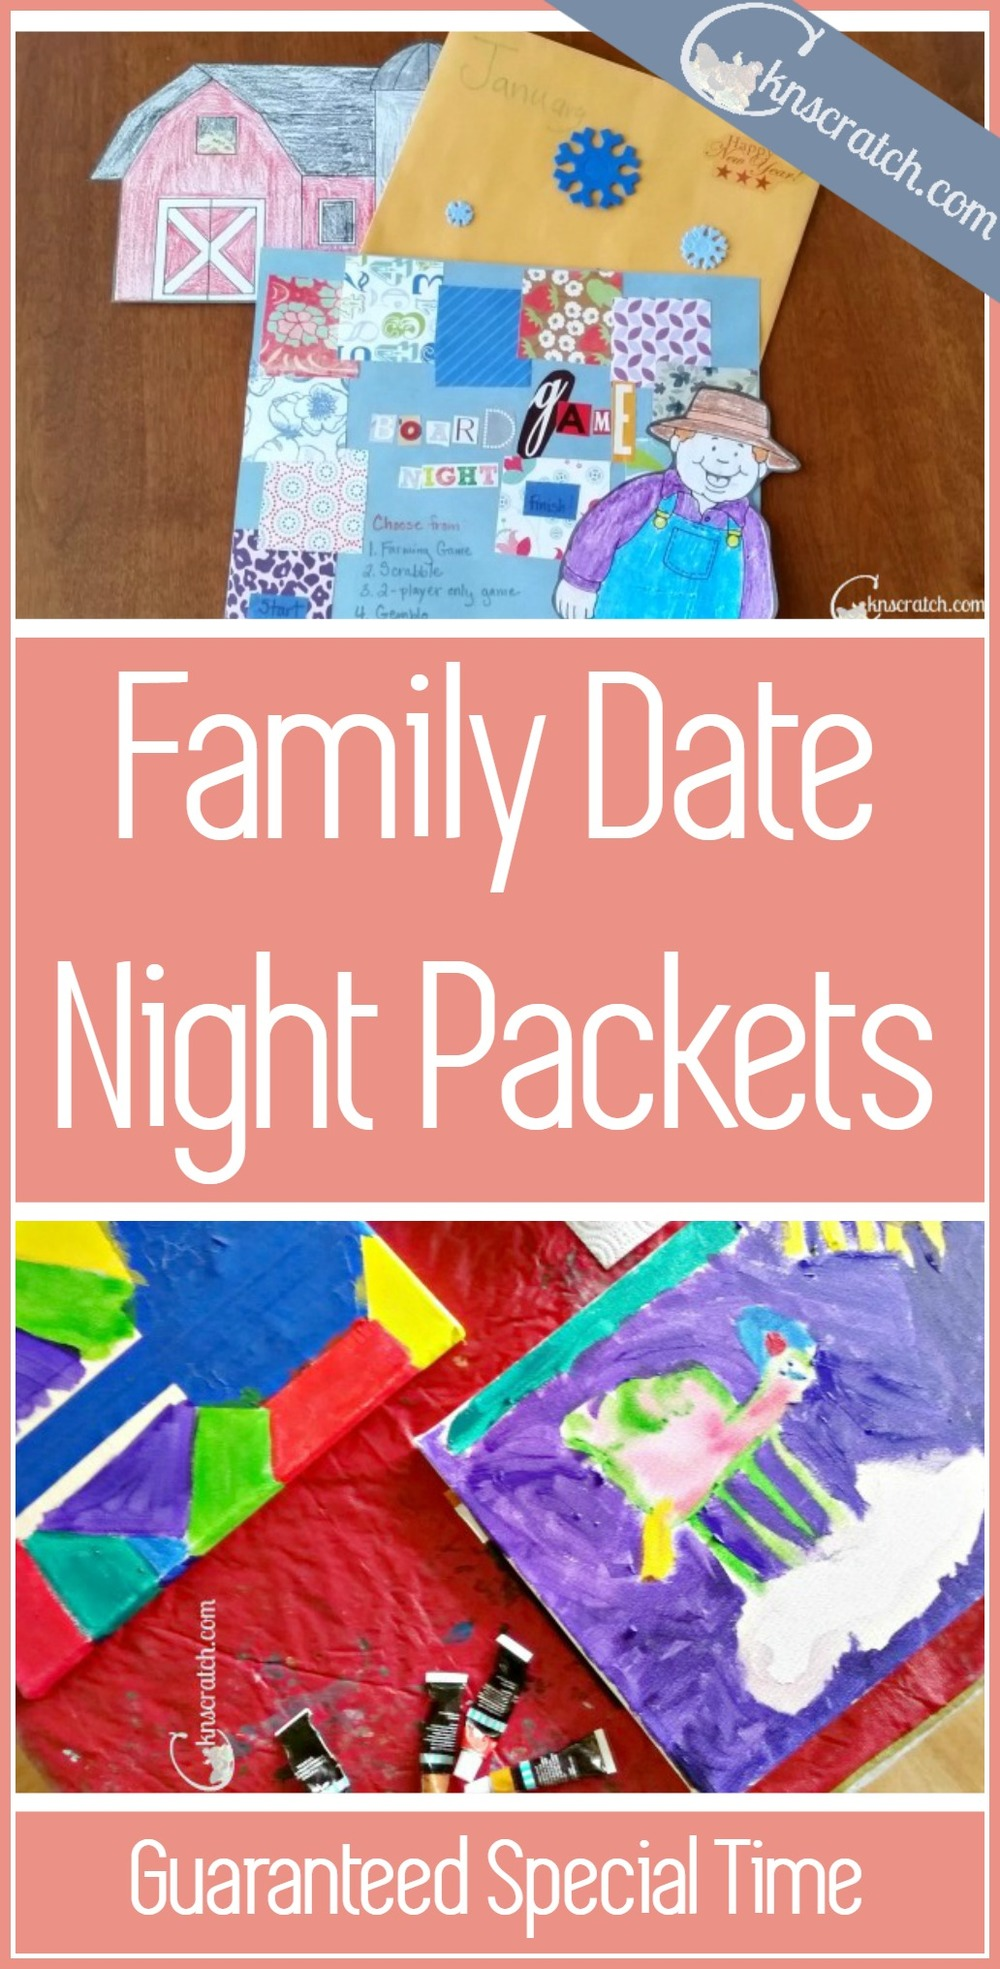 This is a fabulous idea! Family date night packets for guaranteed special time year round. This would make a great Christmas gift too!